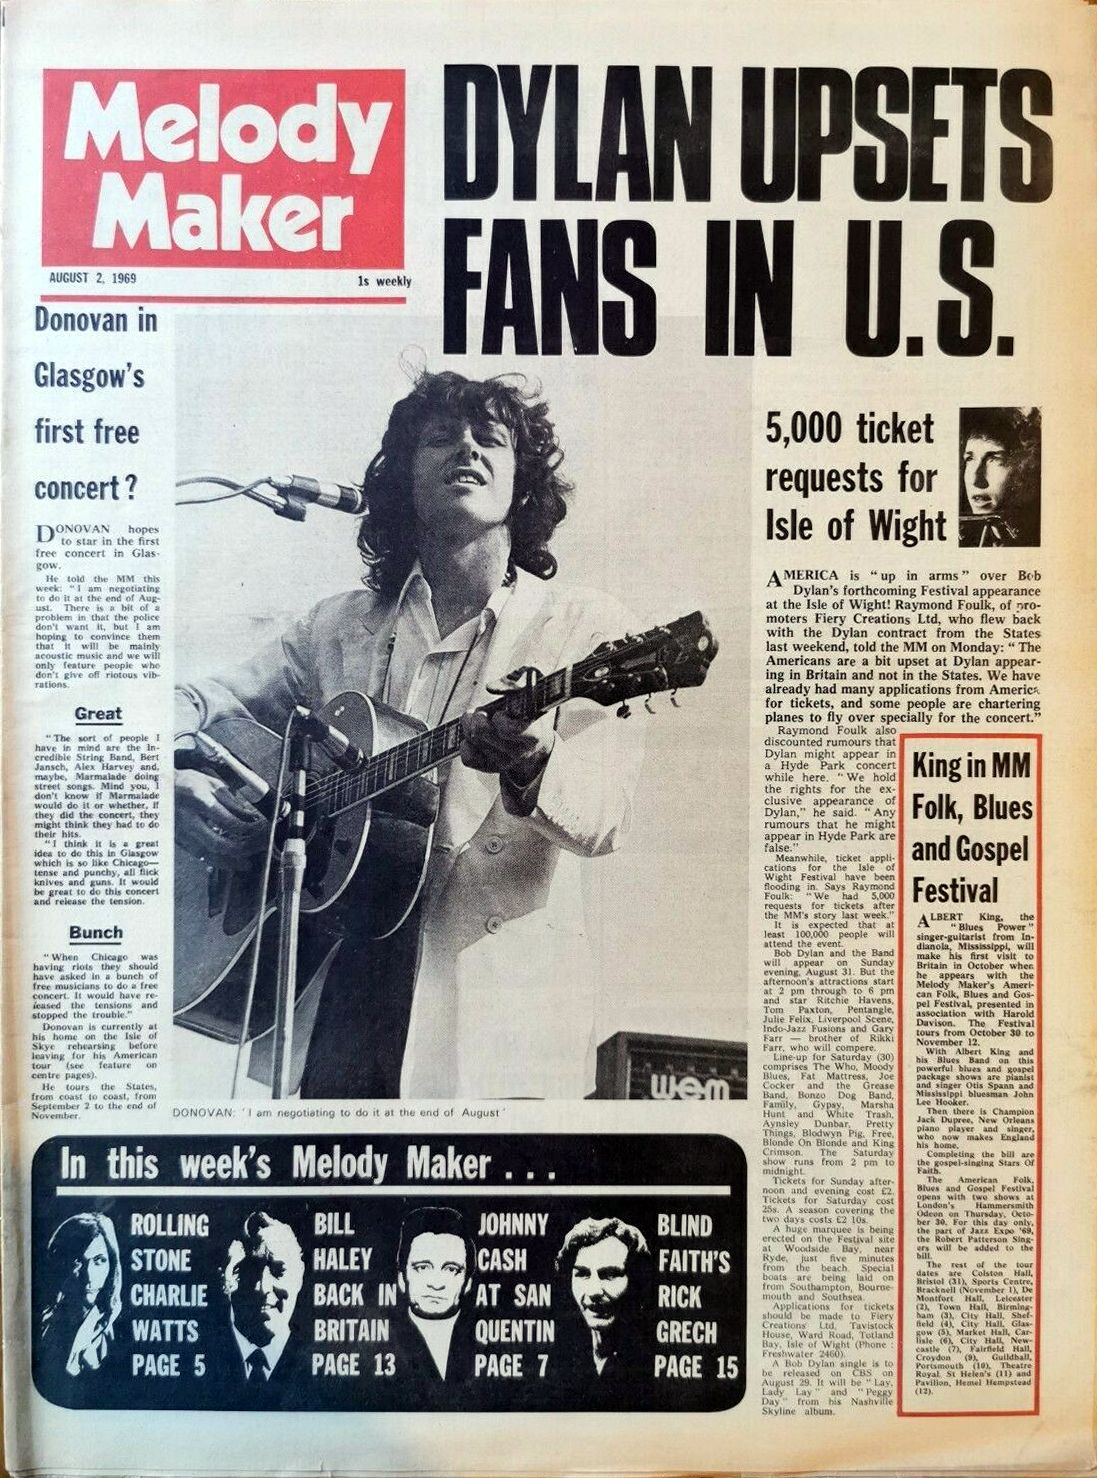 Melody Maker 2 August 1969 Bob Dylan cover story